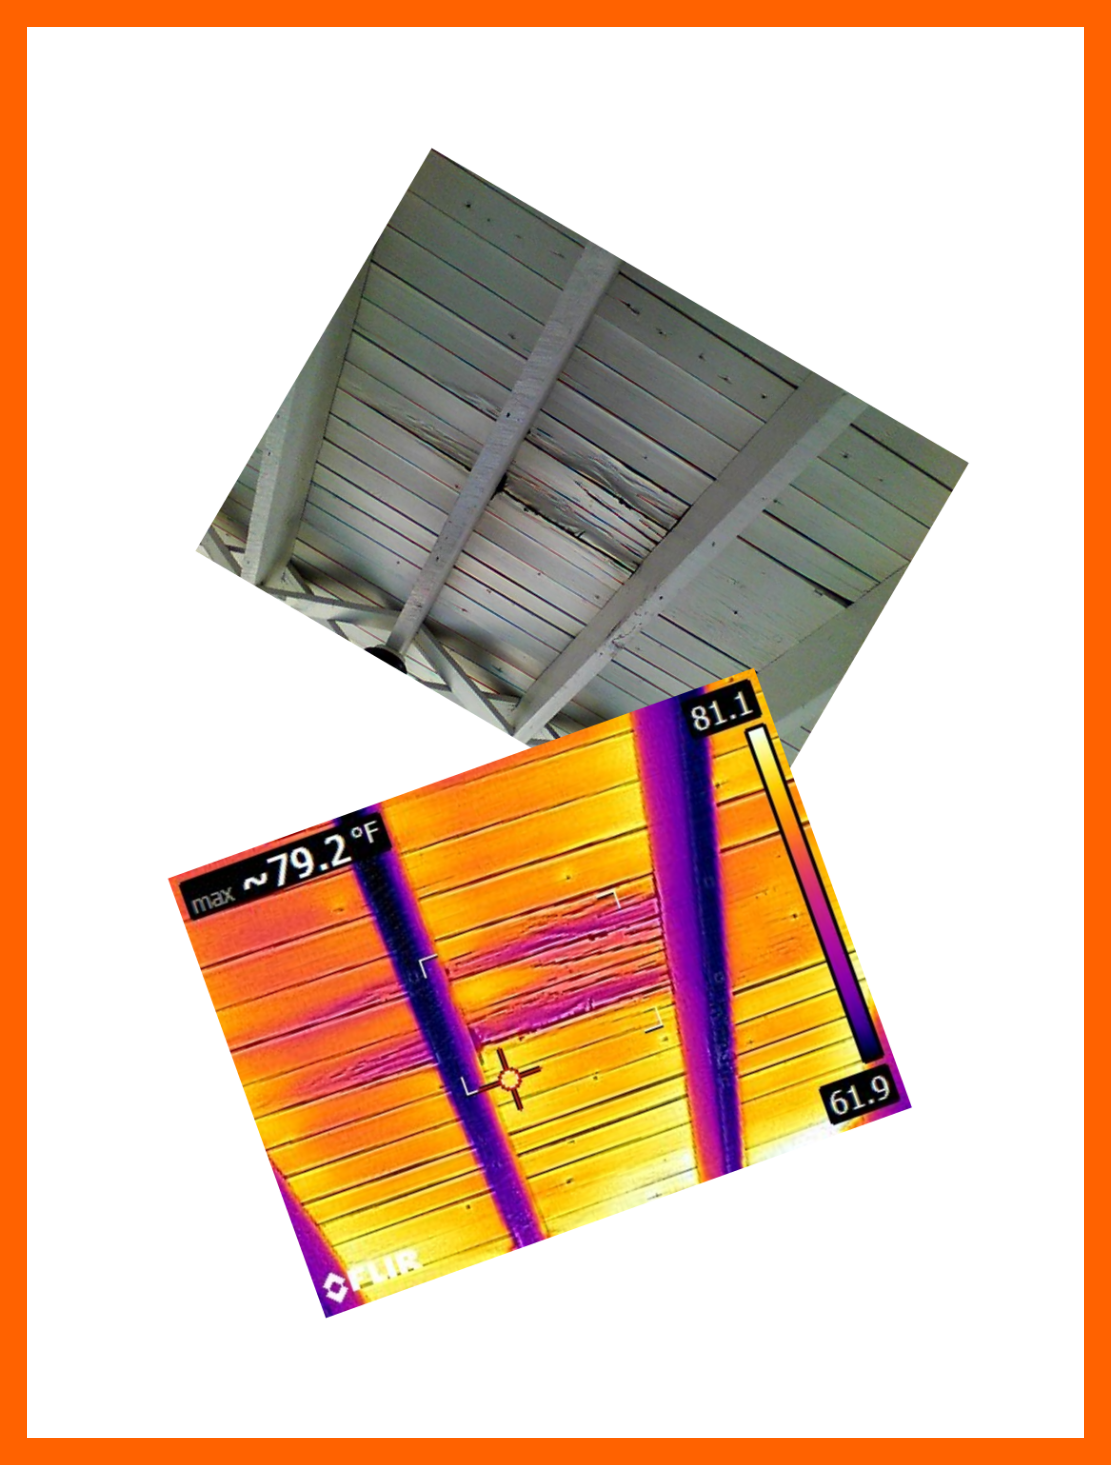 Infrared thermal imaging can be a great tool to detect many hidden issues, roof leaks is just one example.